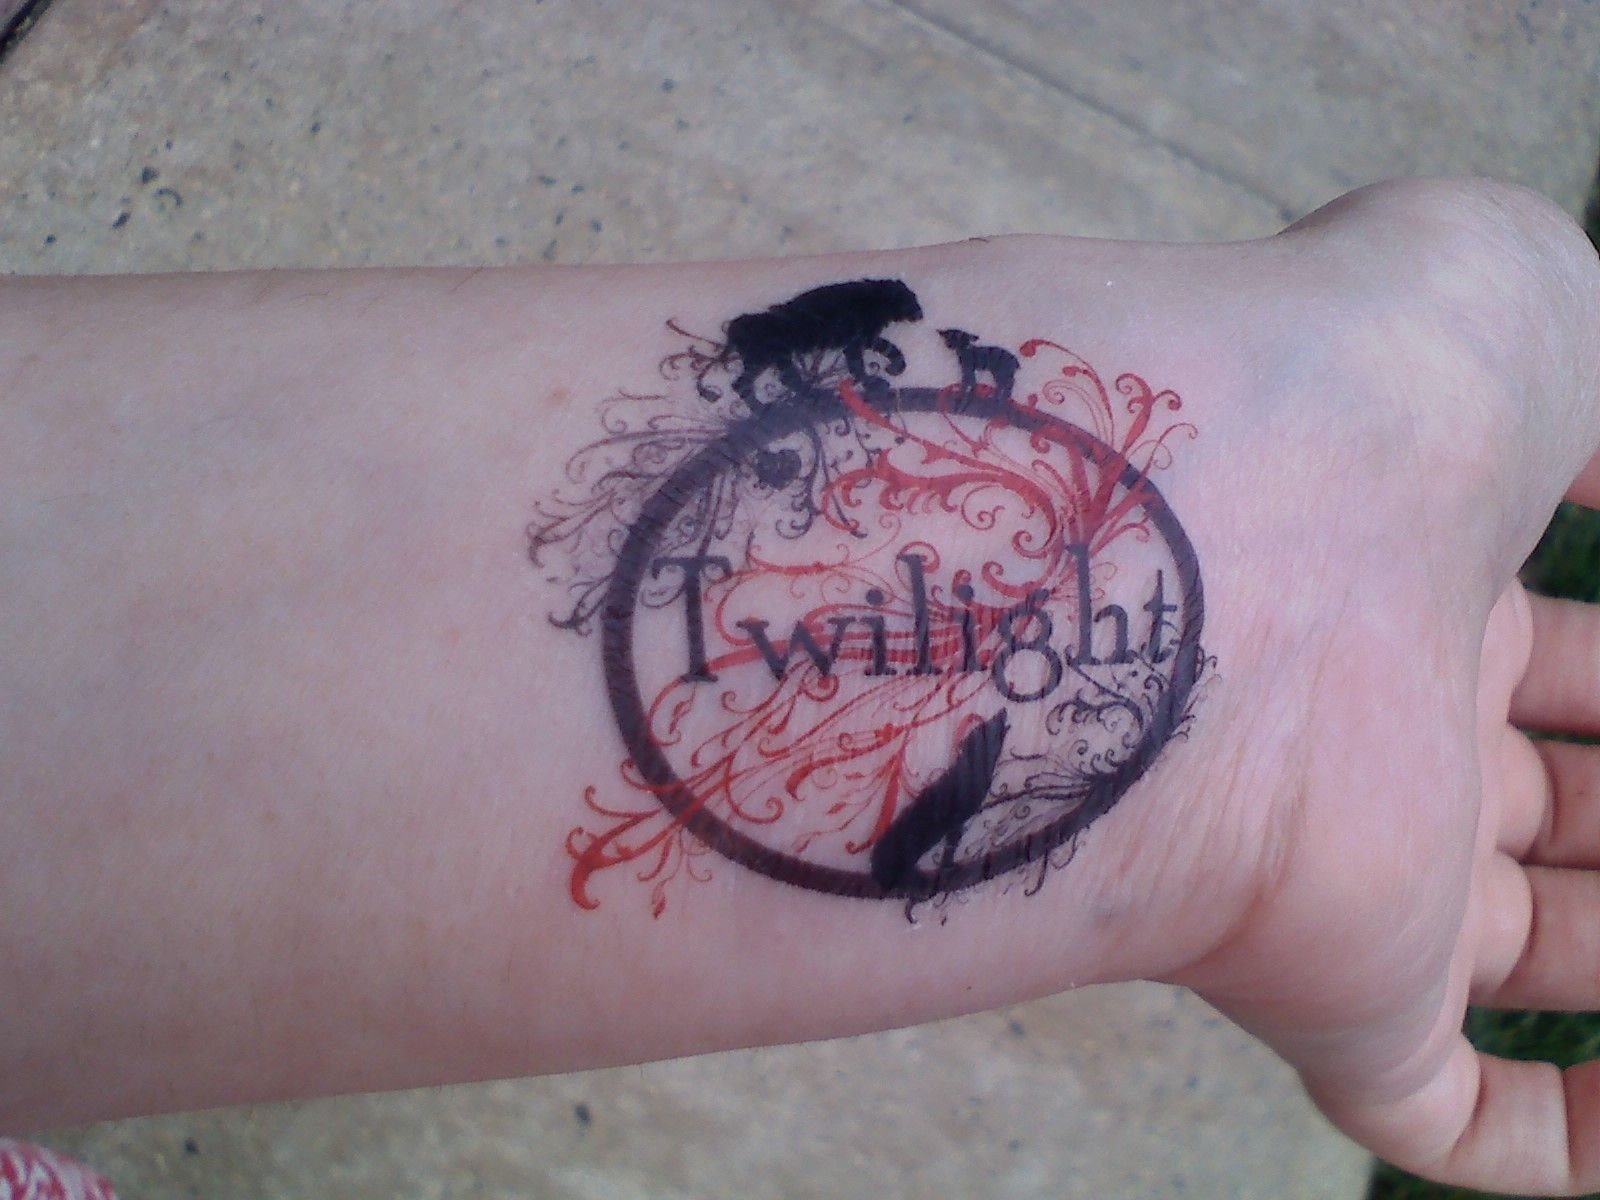 1000 images about tattoos gone wrong on pinterest for Tattoos gone wrong buzzfeed